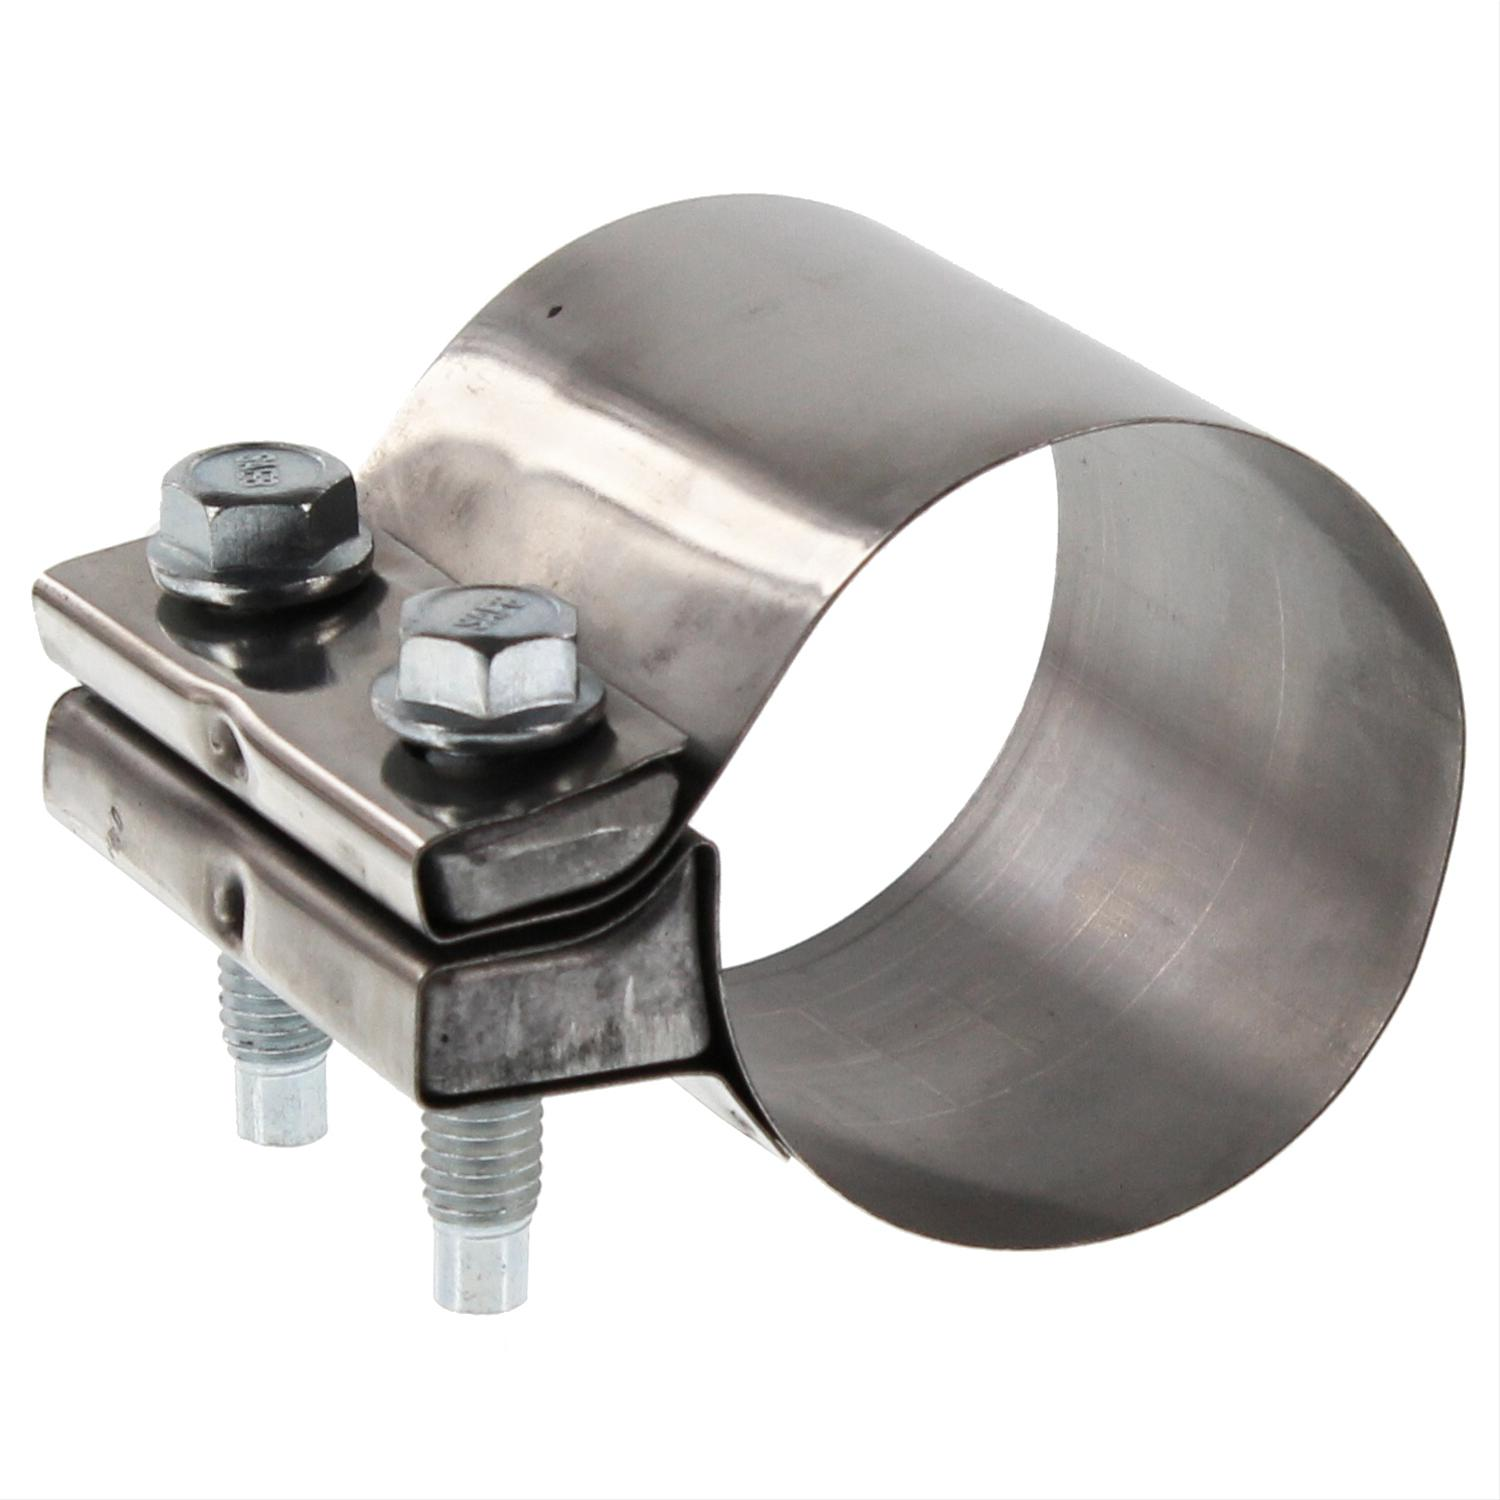 Summit racing band muffler clamp quot stainless steel each